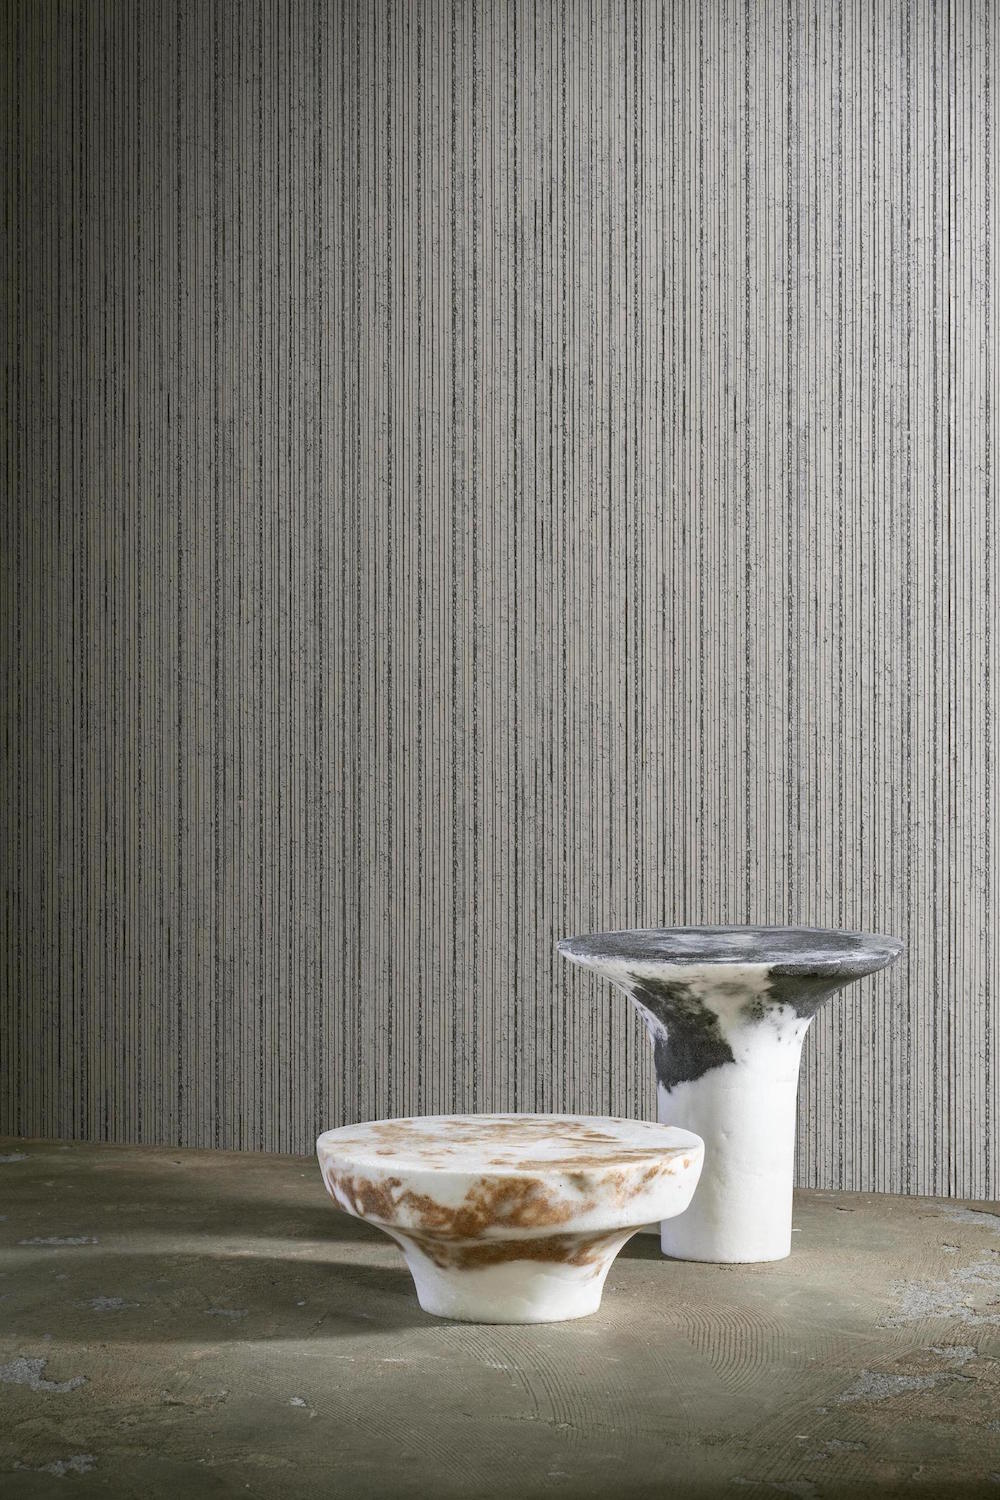 A bare room with two small tables featuring Arte wallcovering